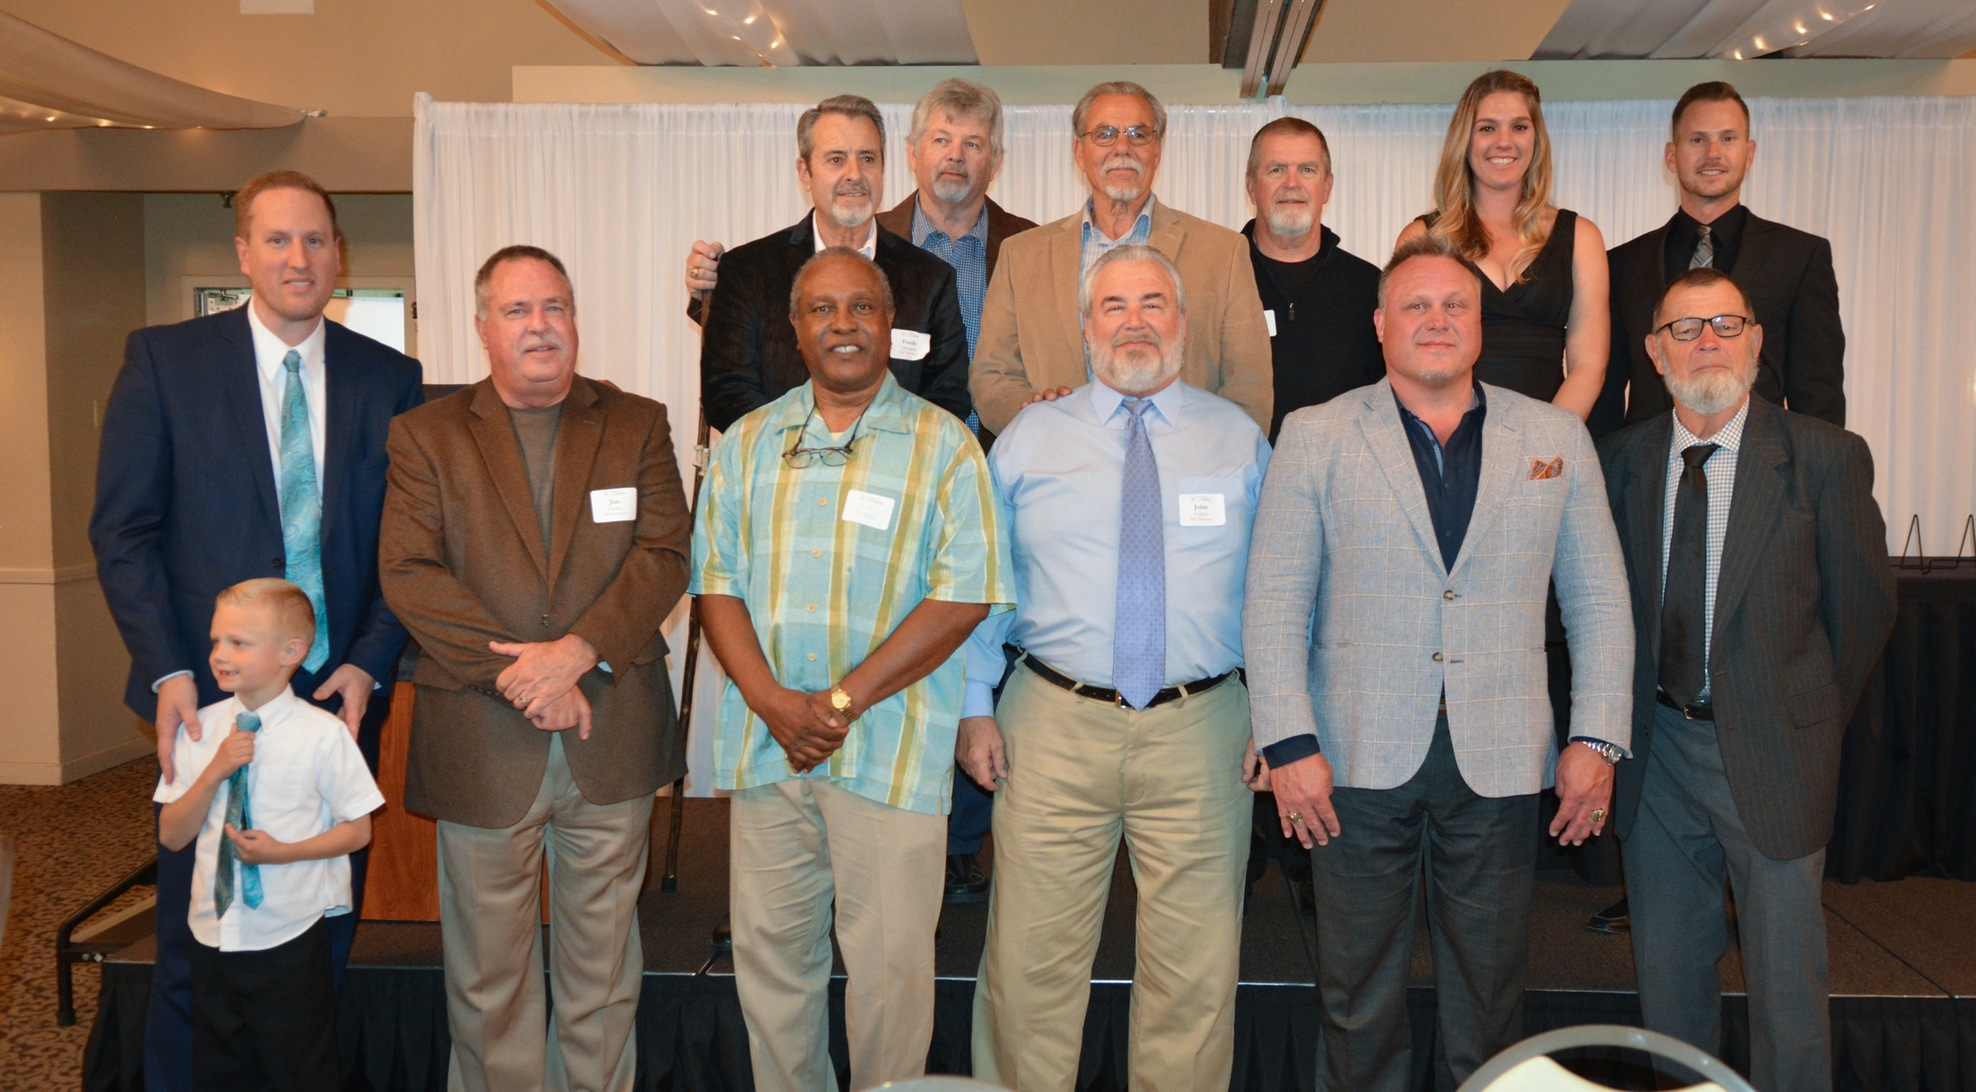 La Verne inducts Athletics Hall of Fame Class of 2017